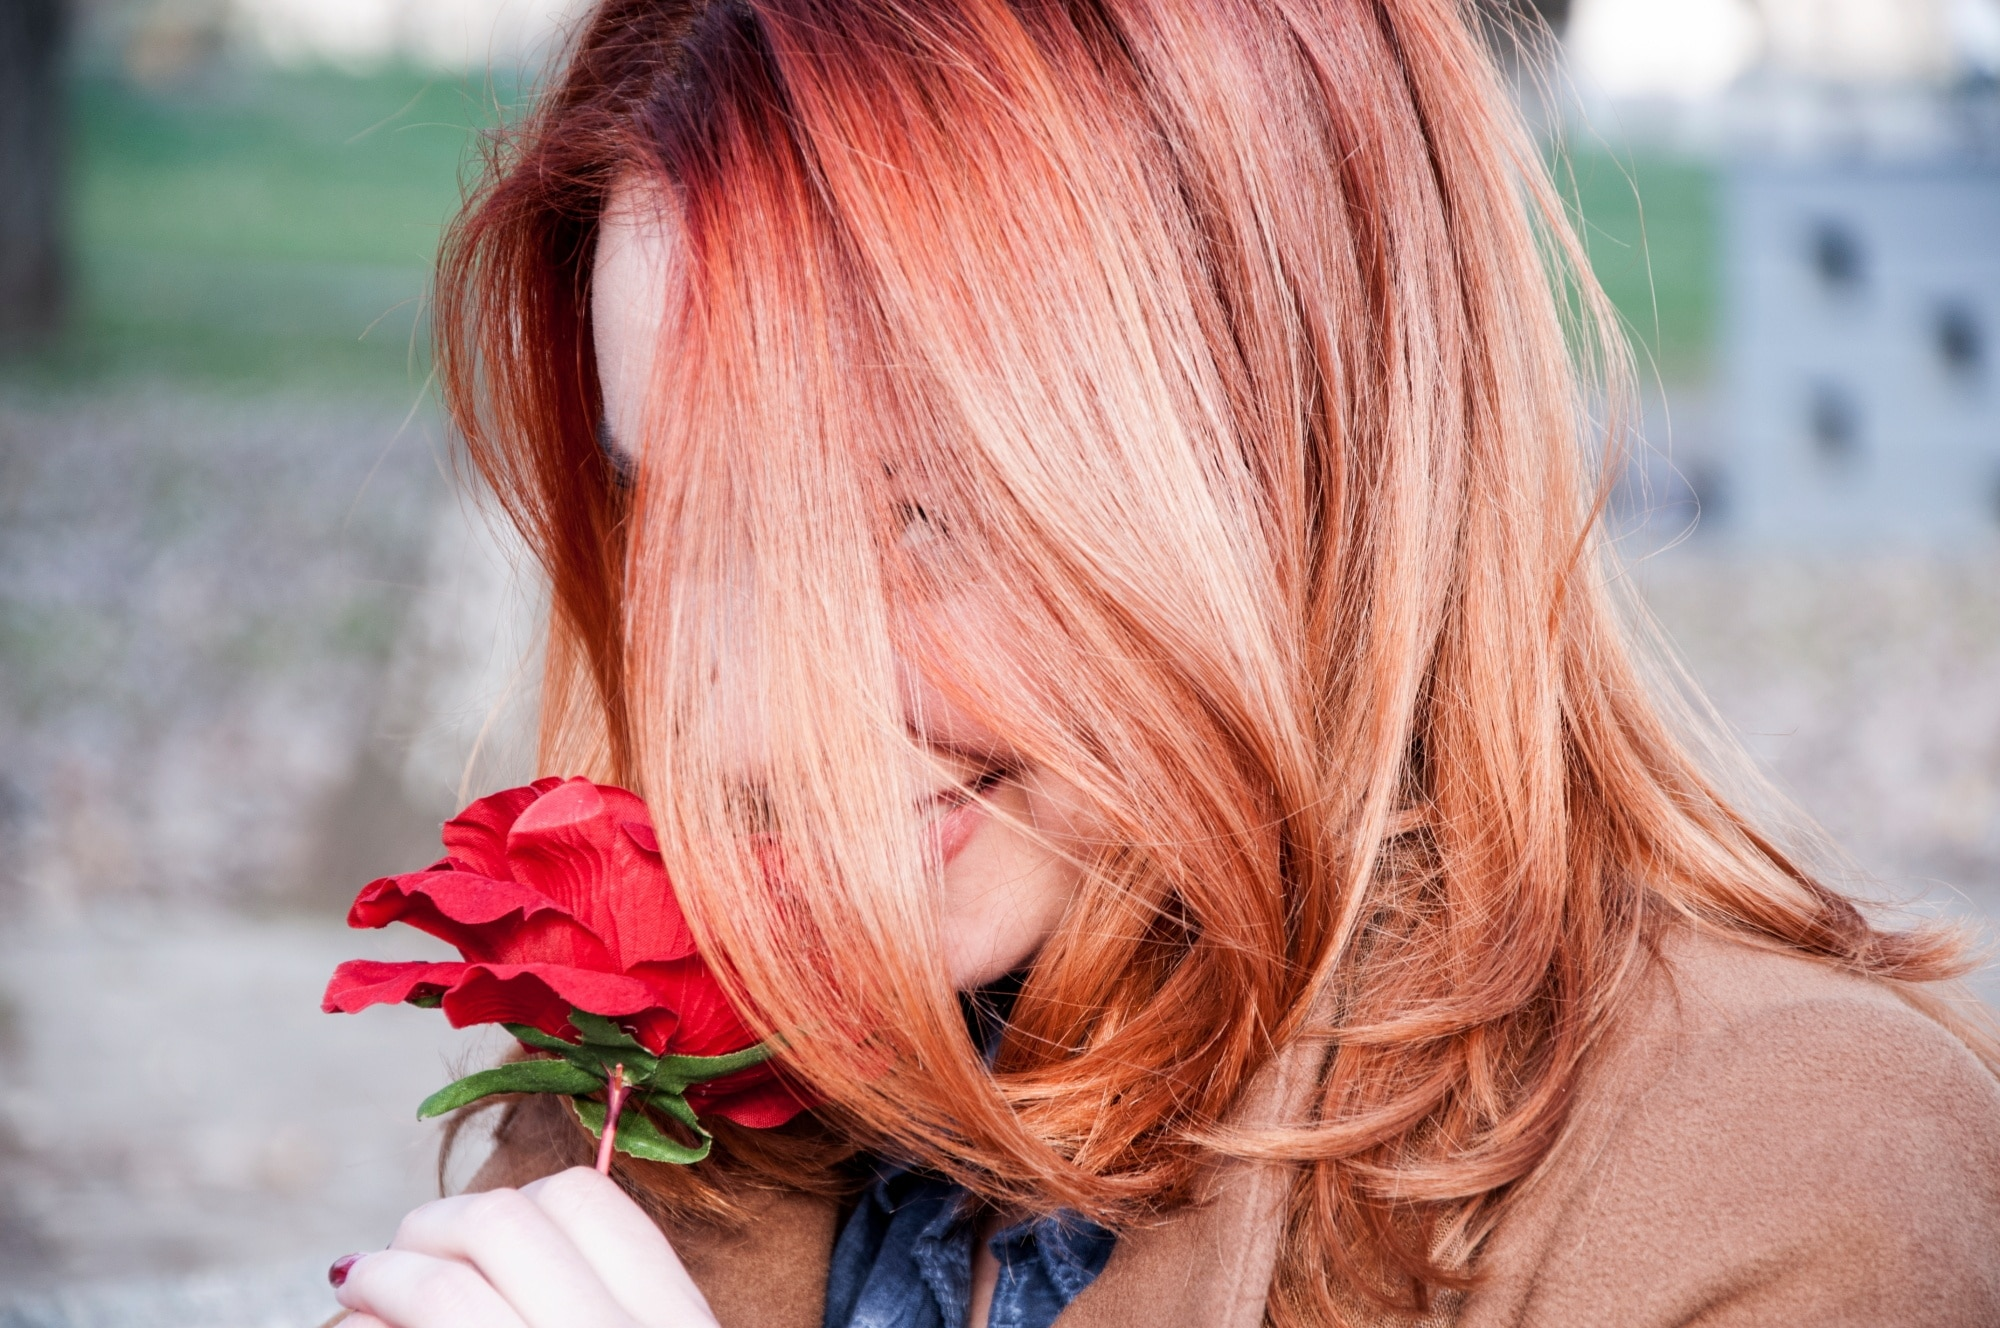 blorange hair: tips & inspo for getting blood orange hair hues